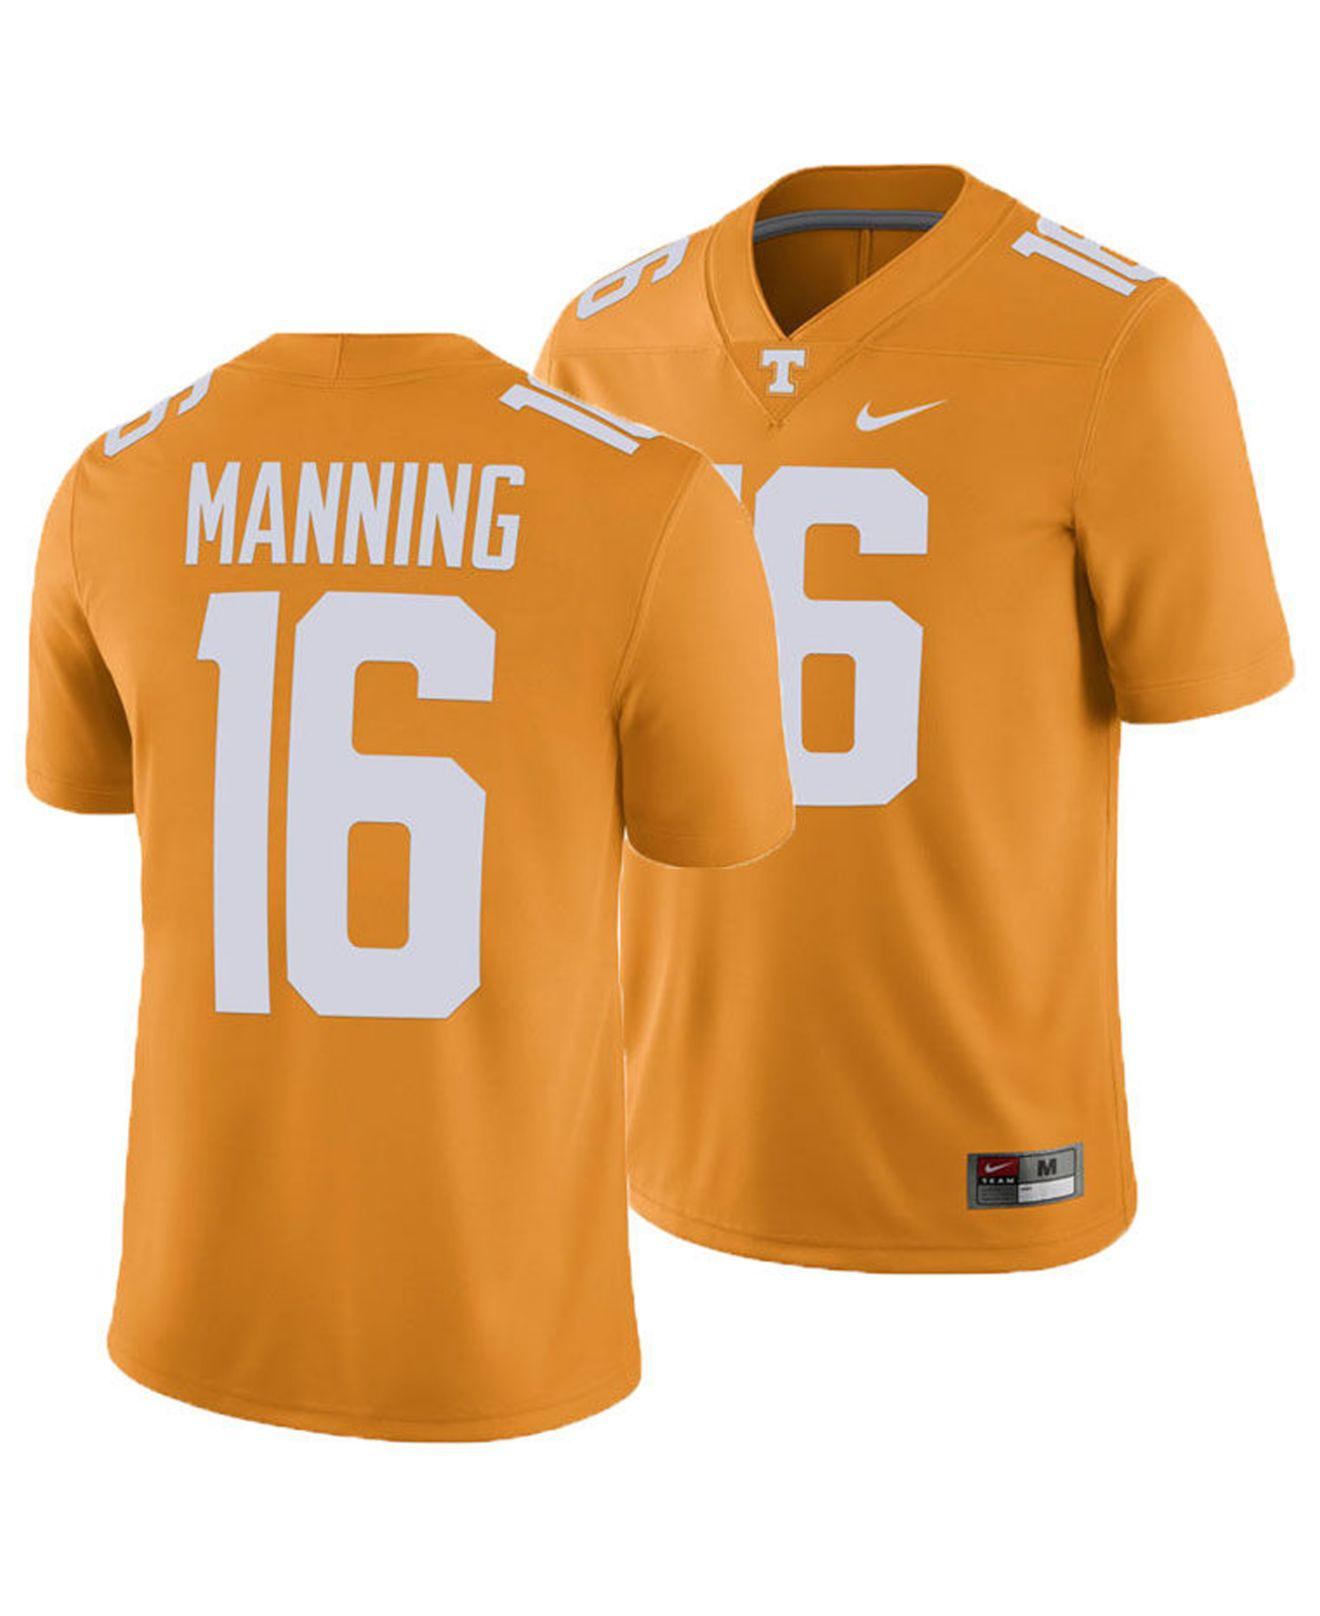 1a23c9098 Lyst - Nike Peyton Manning Tennessee Volunteers Player Game Jersey ...